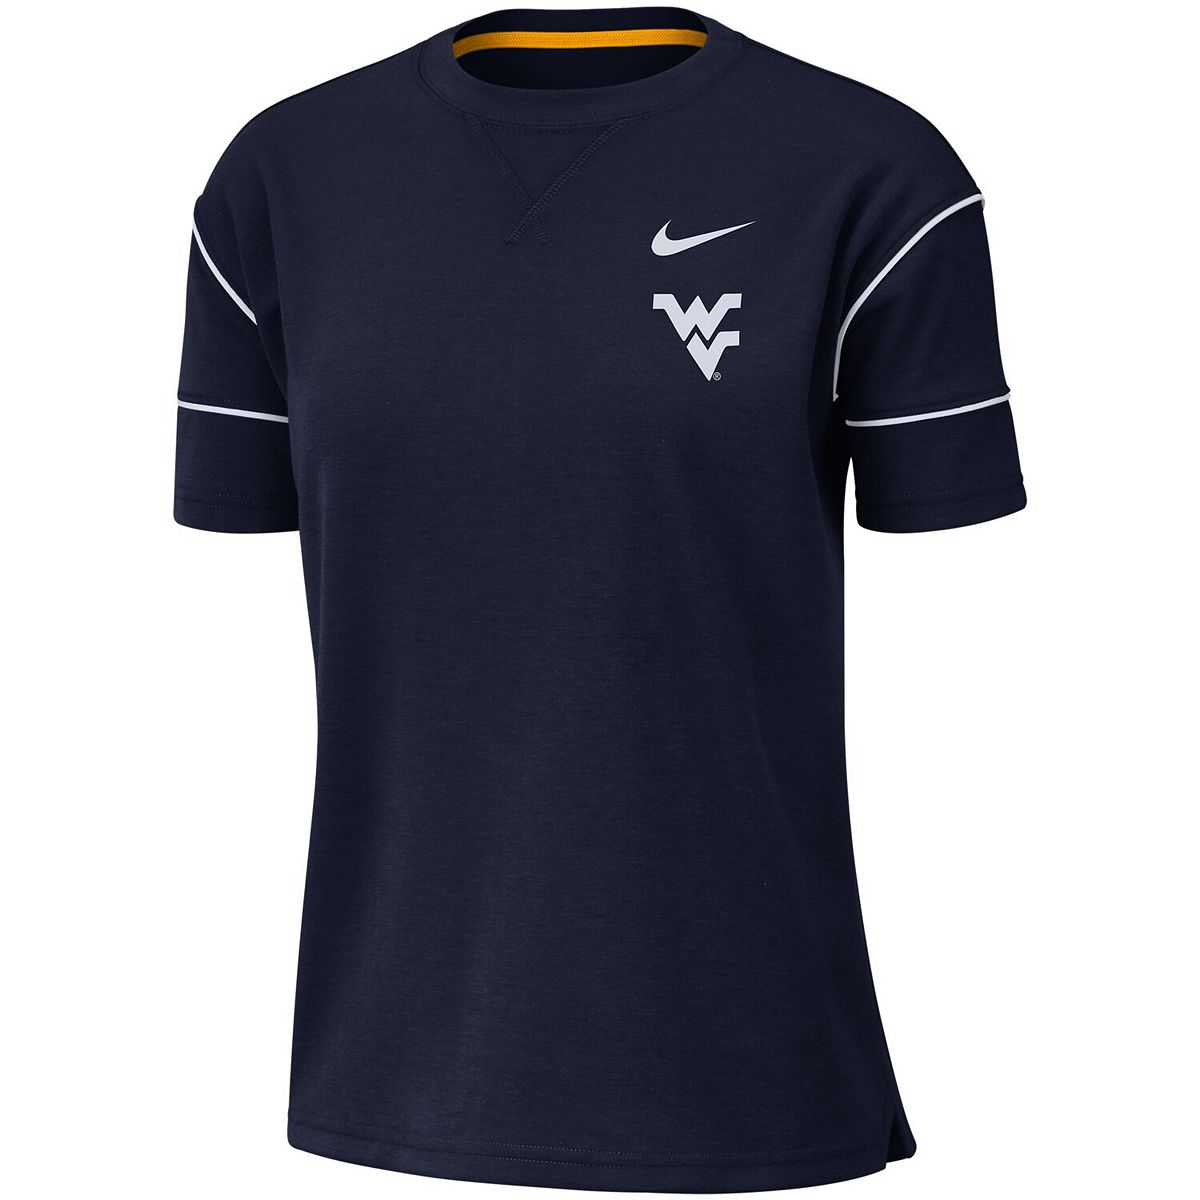 Women's Nike Navy West Virginia Mountaineers Double Knit Fashion Performance T-Shirt xmbnt